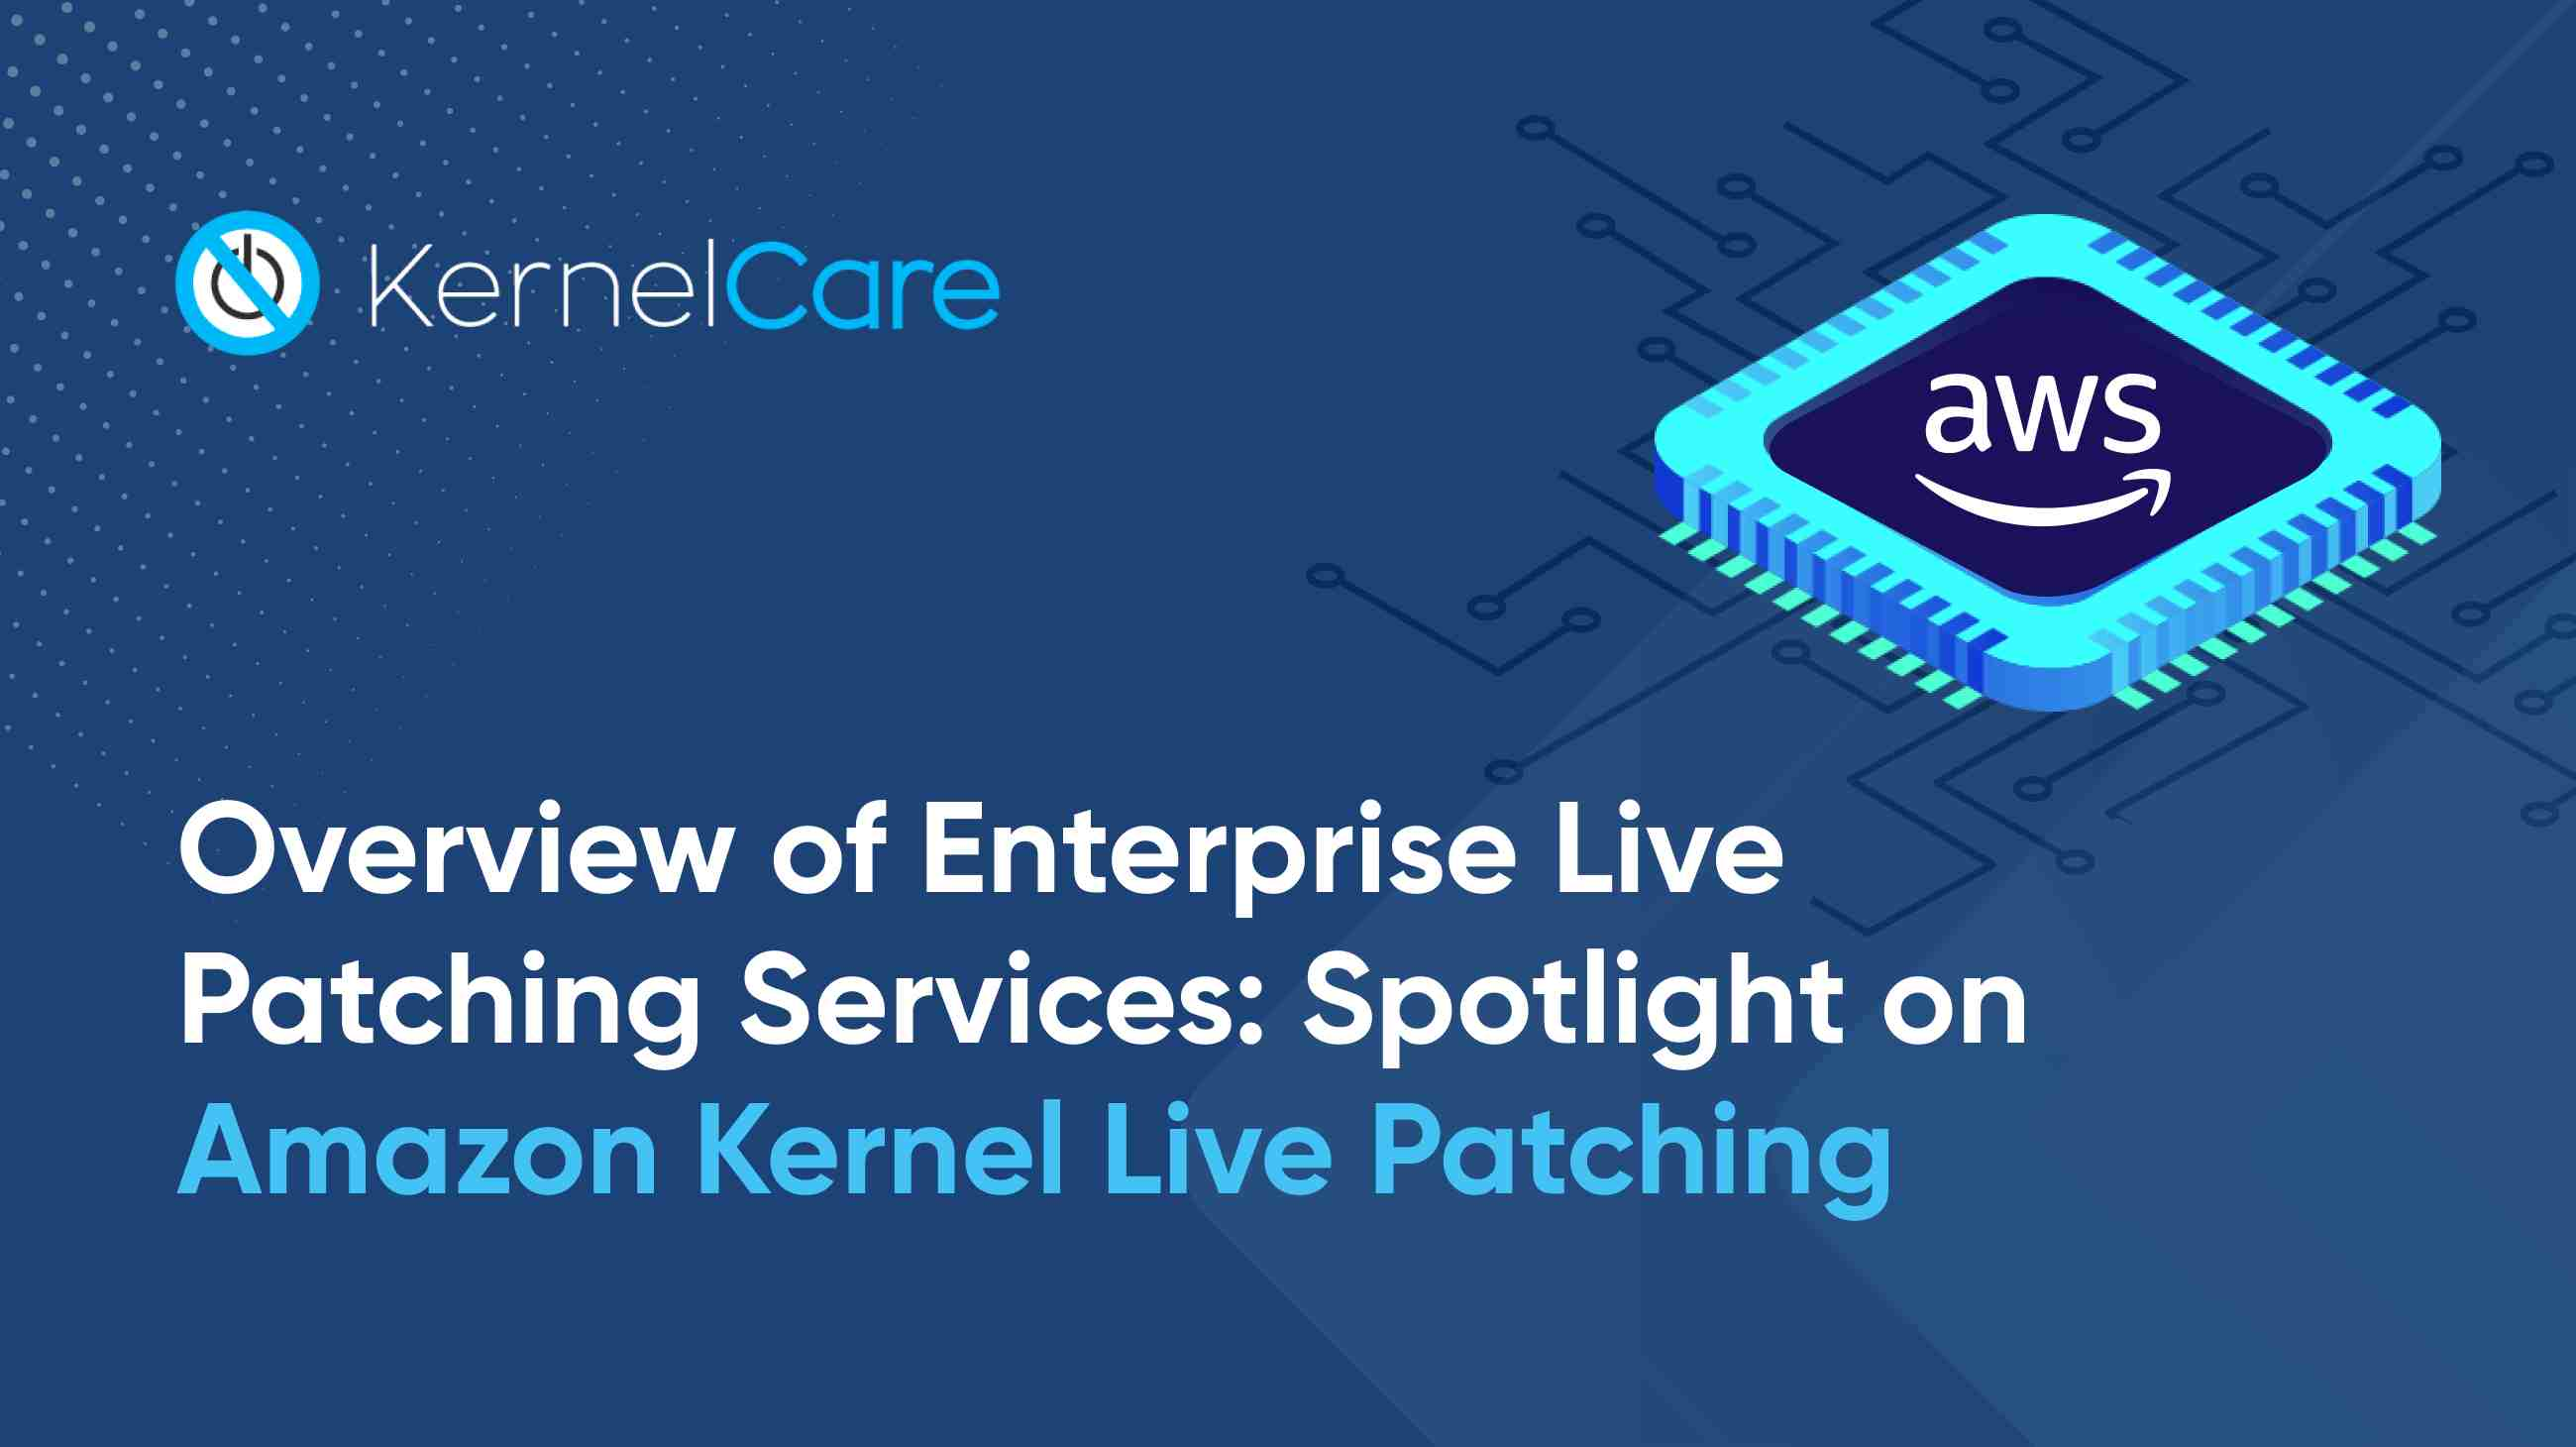 Amazon Kernel Live Patching